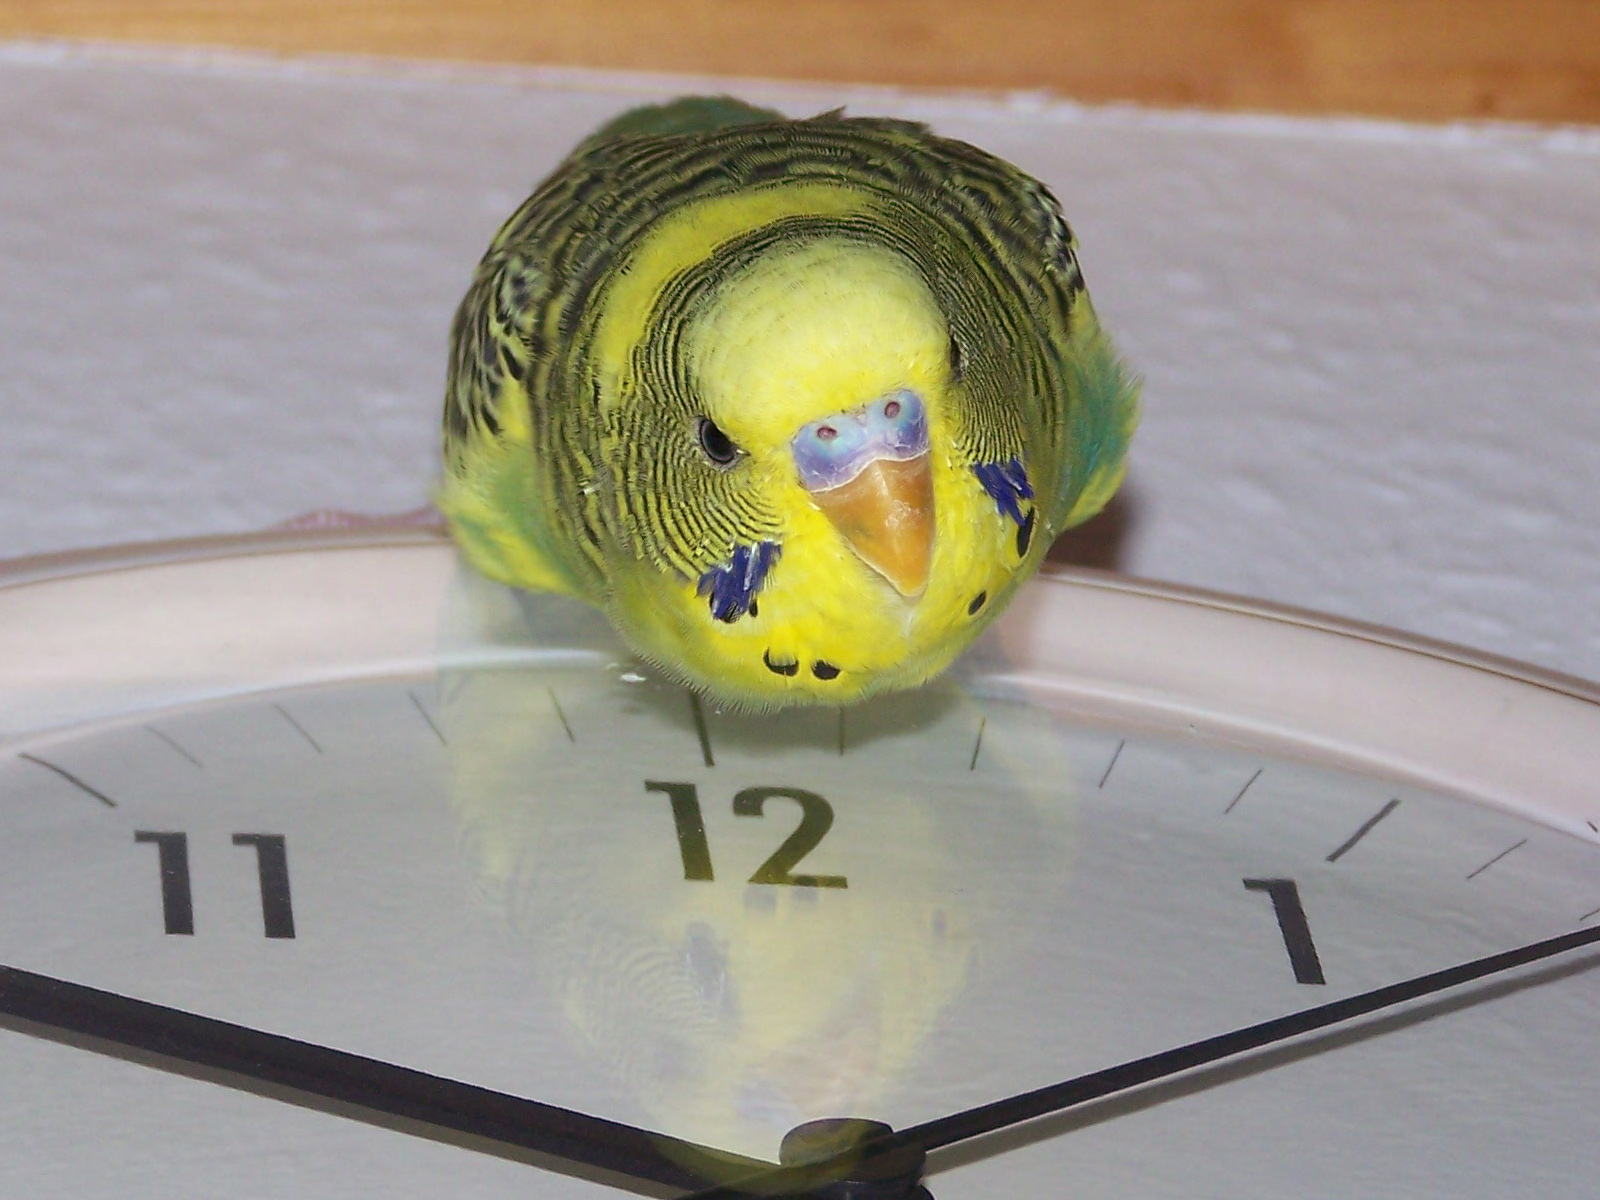 Linux the Timemaster